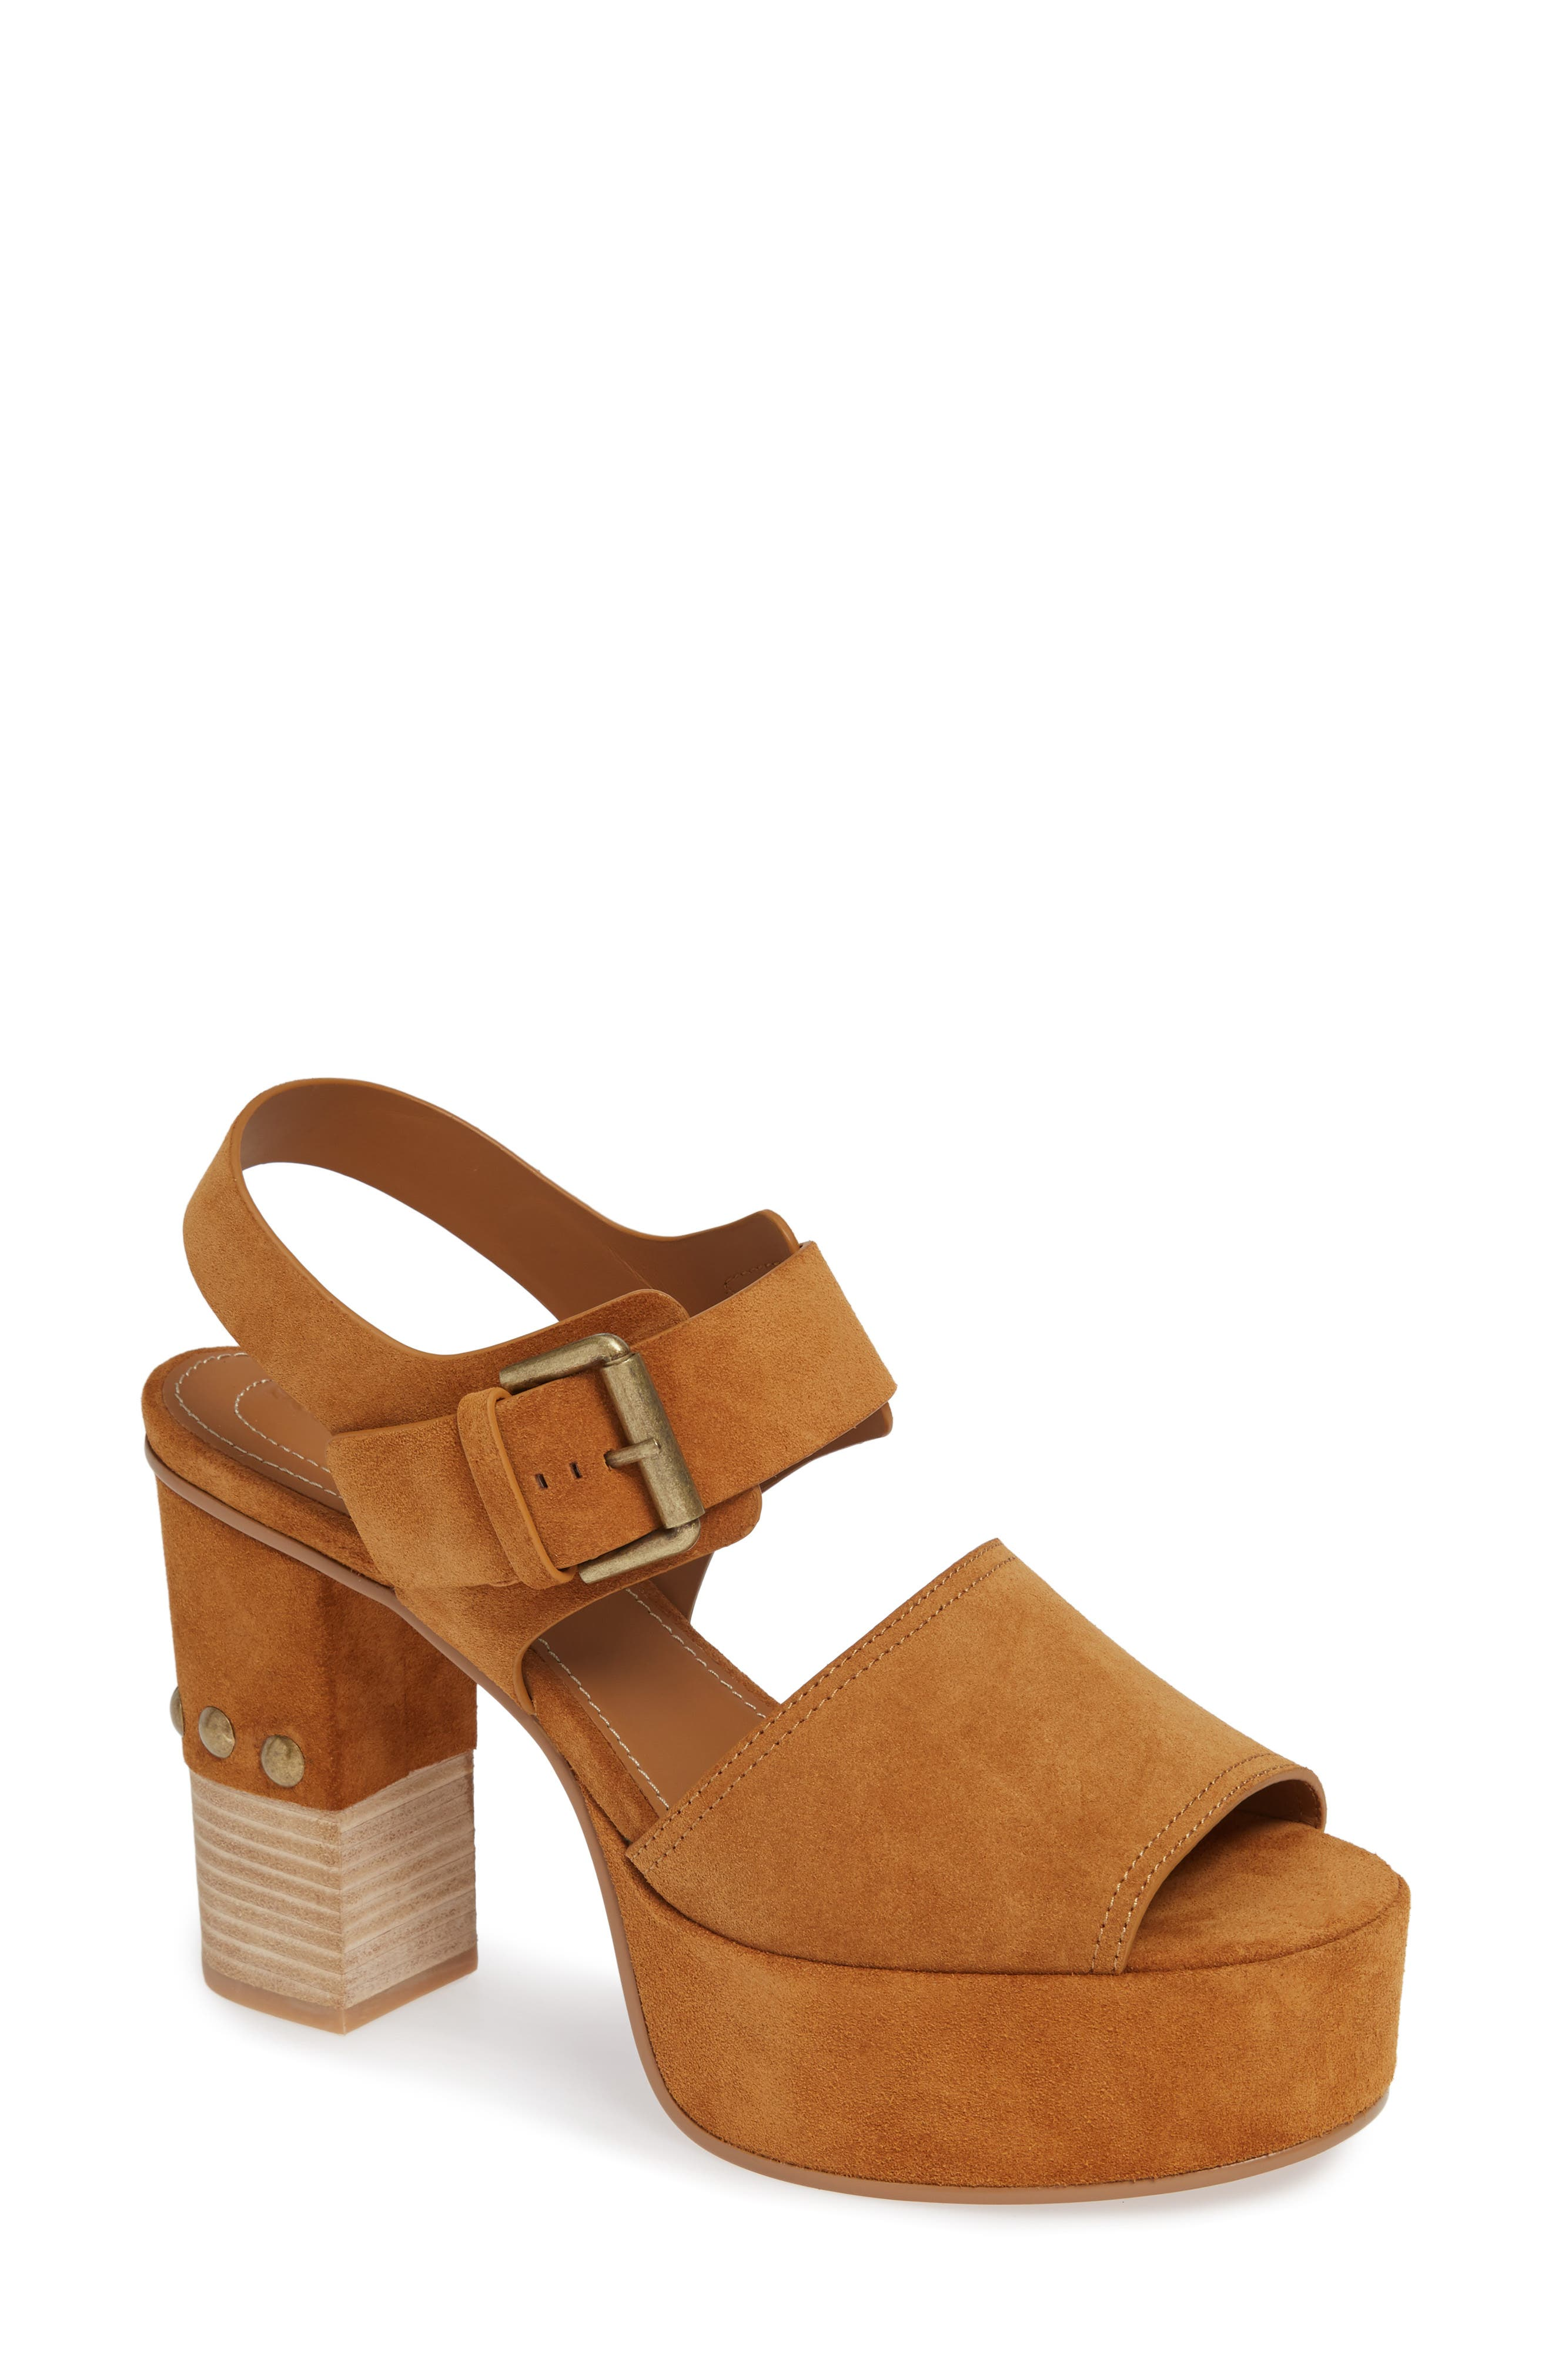 Marta Platform Sandal, Main, color, 200